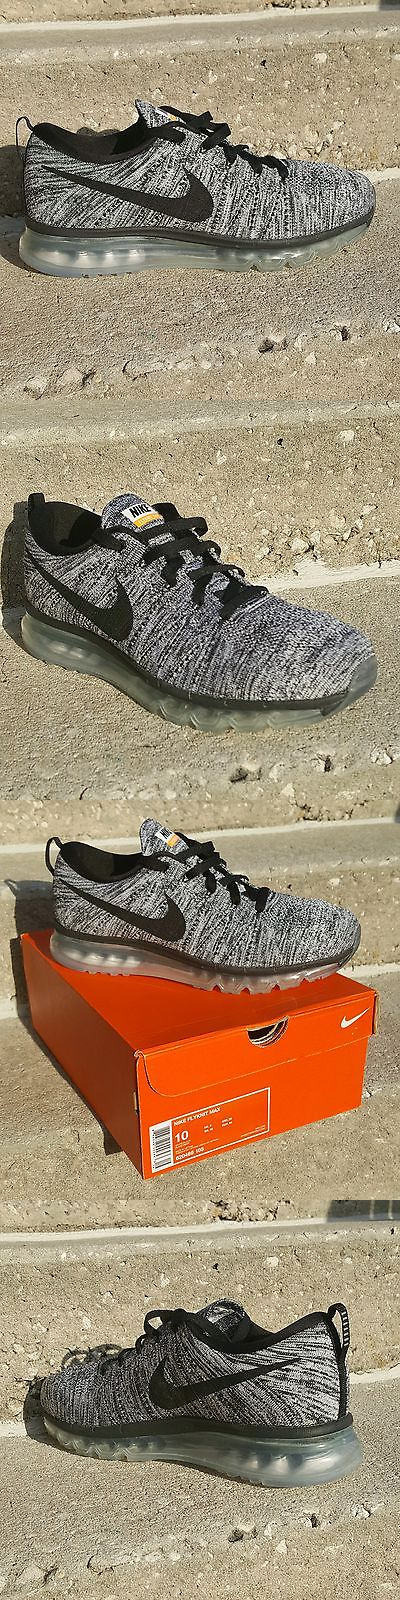 the best attitude d7a81 259b0 Men Shoes  Nike Flyknit Air Max Size 10 Mens Running Shoes White Black -